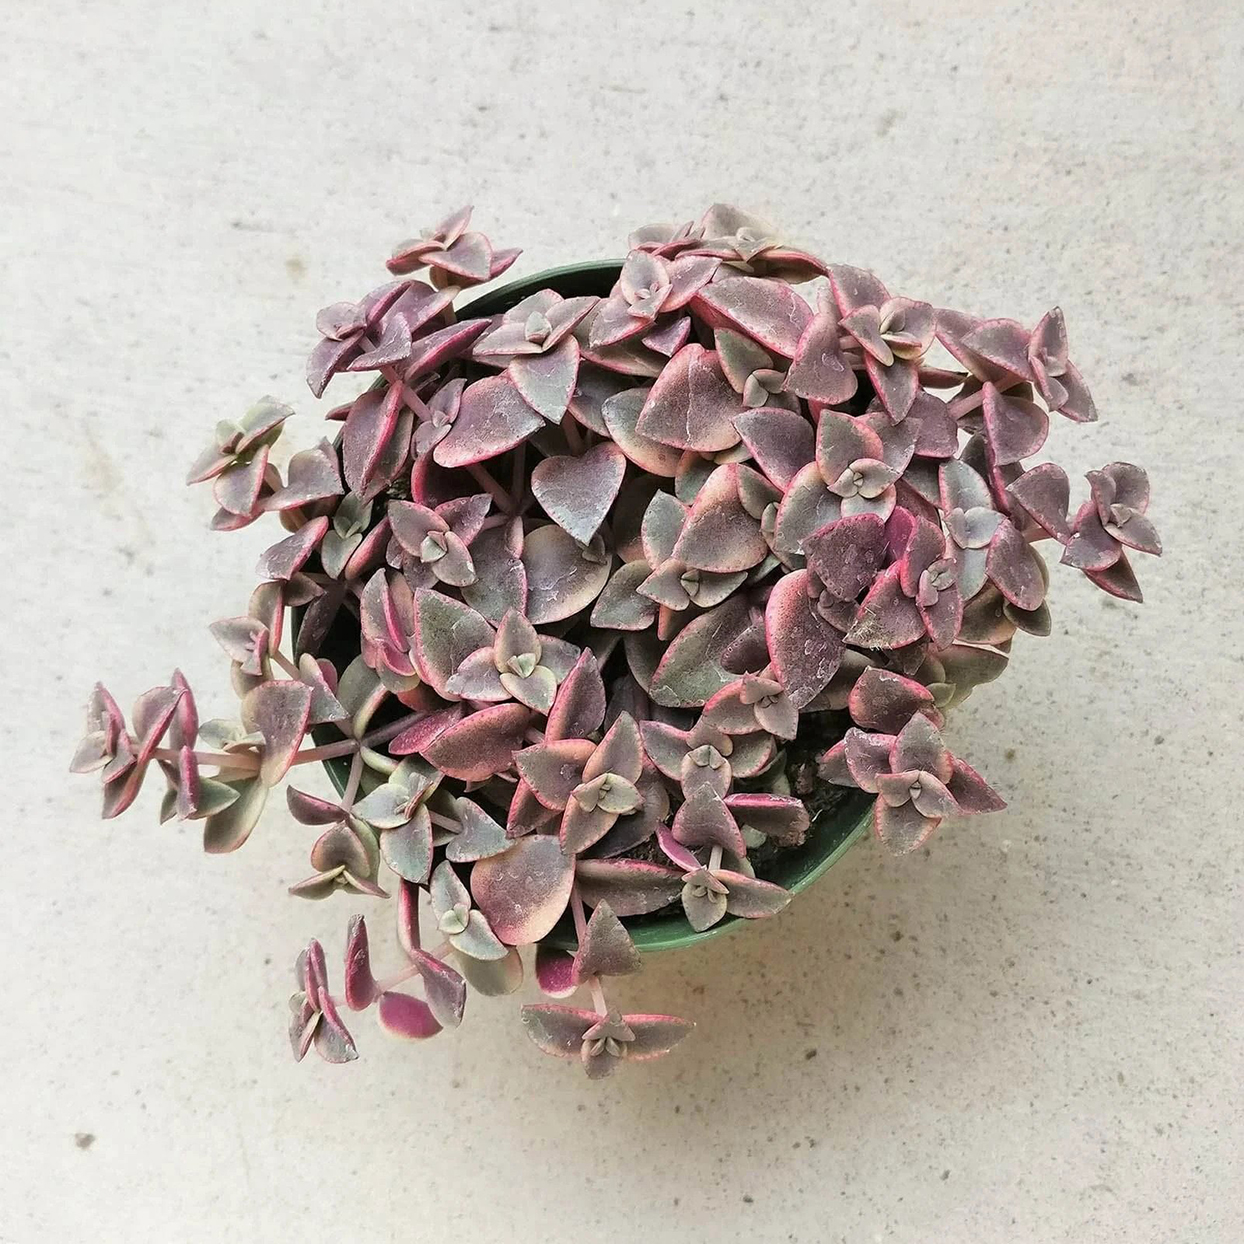 Pot of Calico Kitten Crassula on table